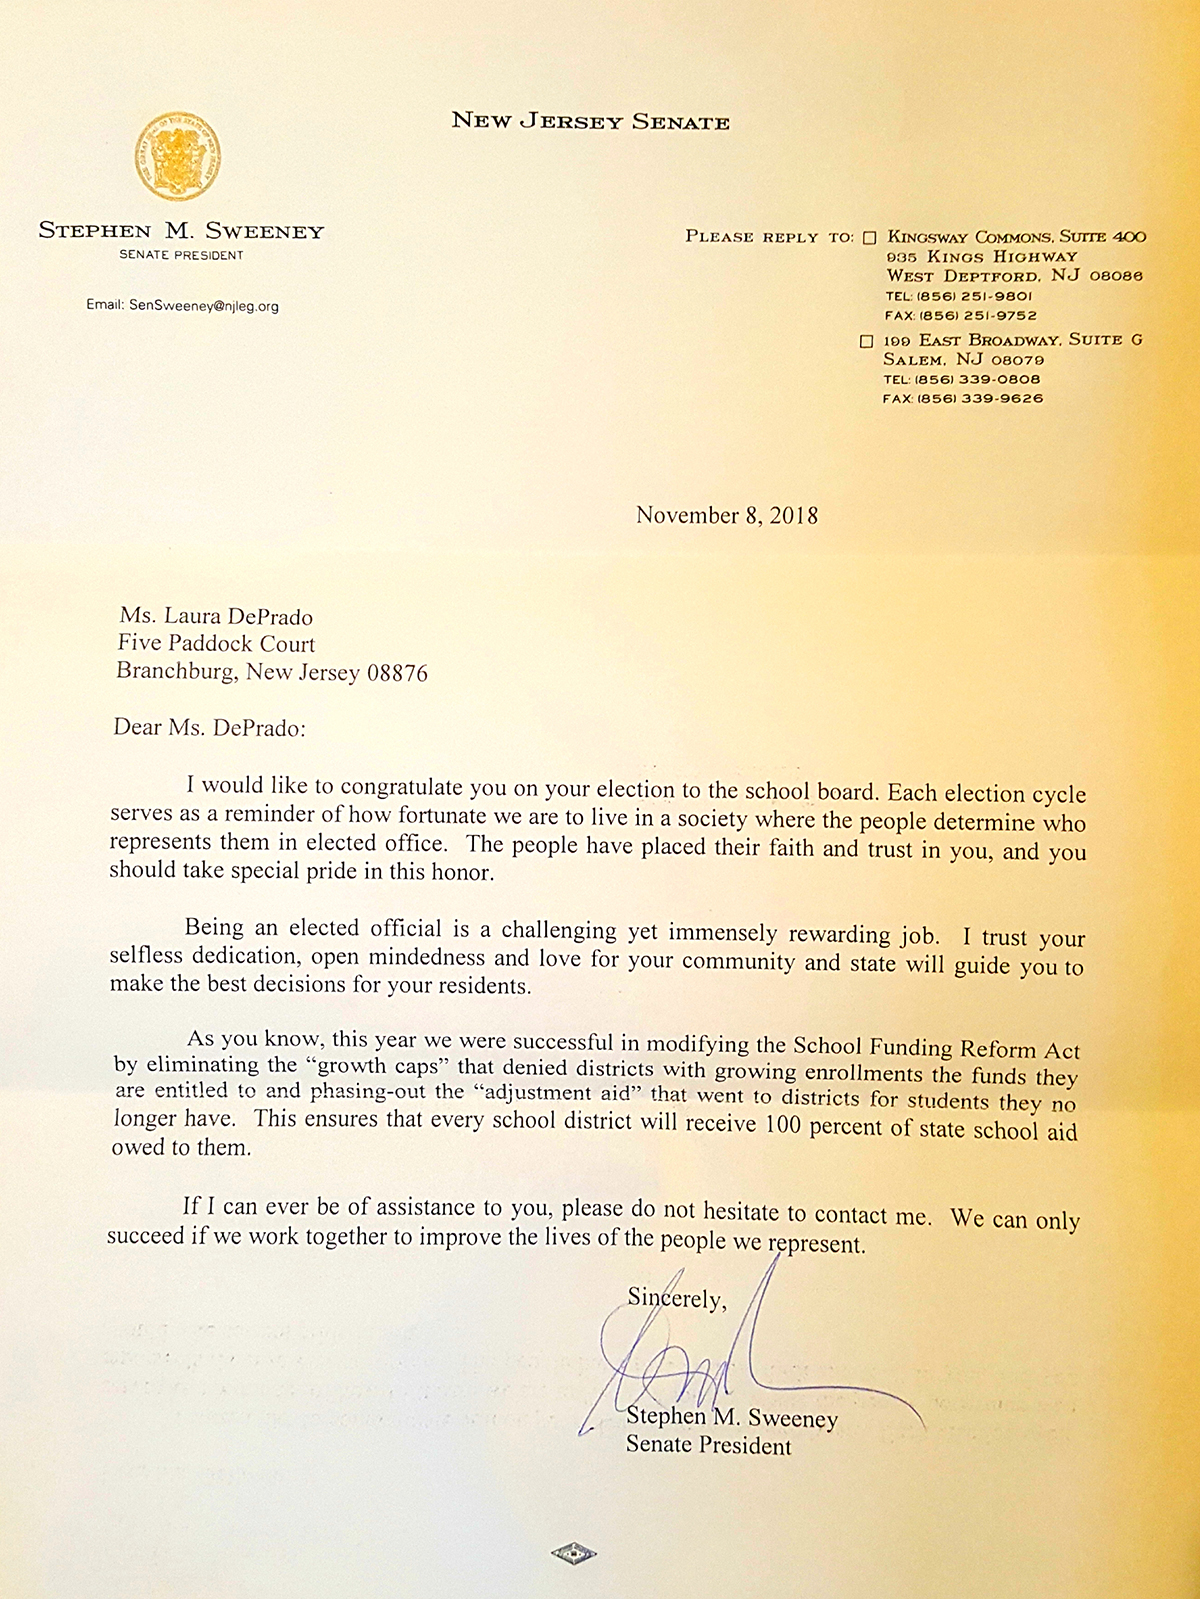 Congratulations Letter from New Jersey Senate President Sweeney